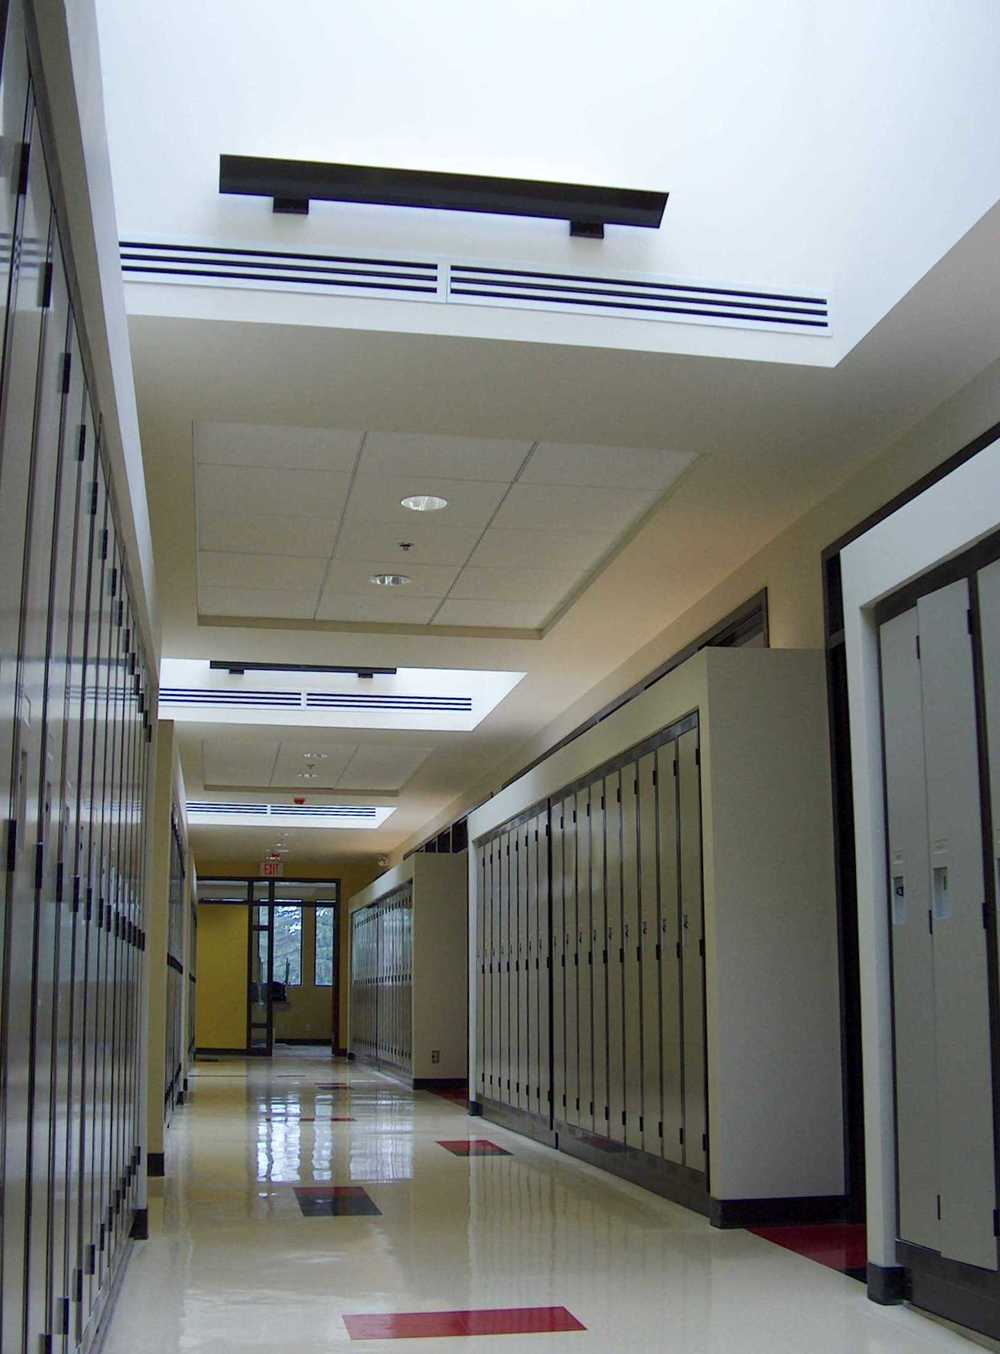 Elmwood School Interior 3.jpg